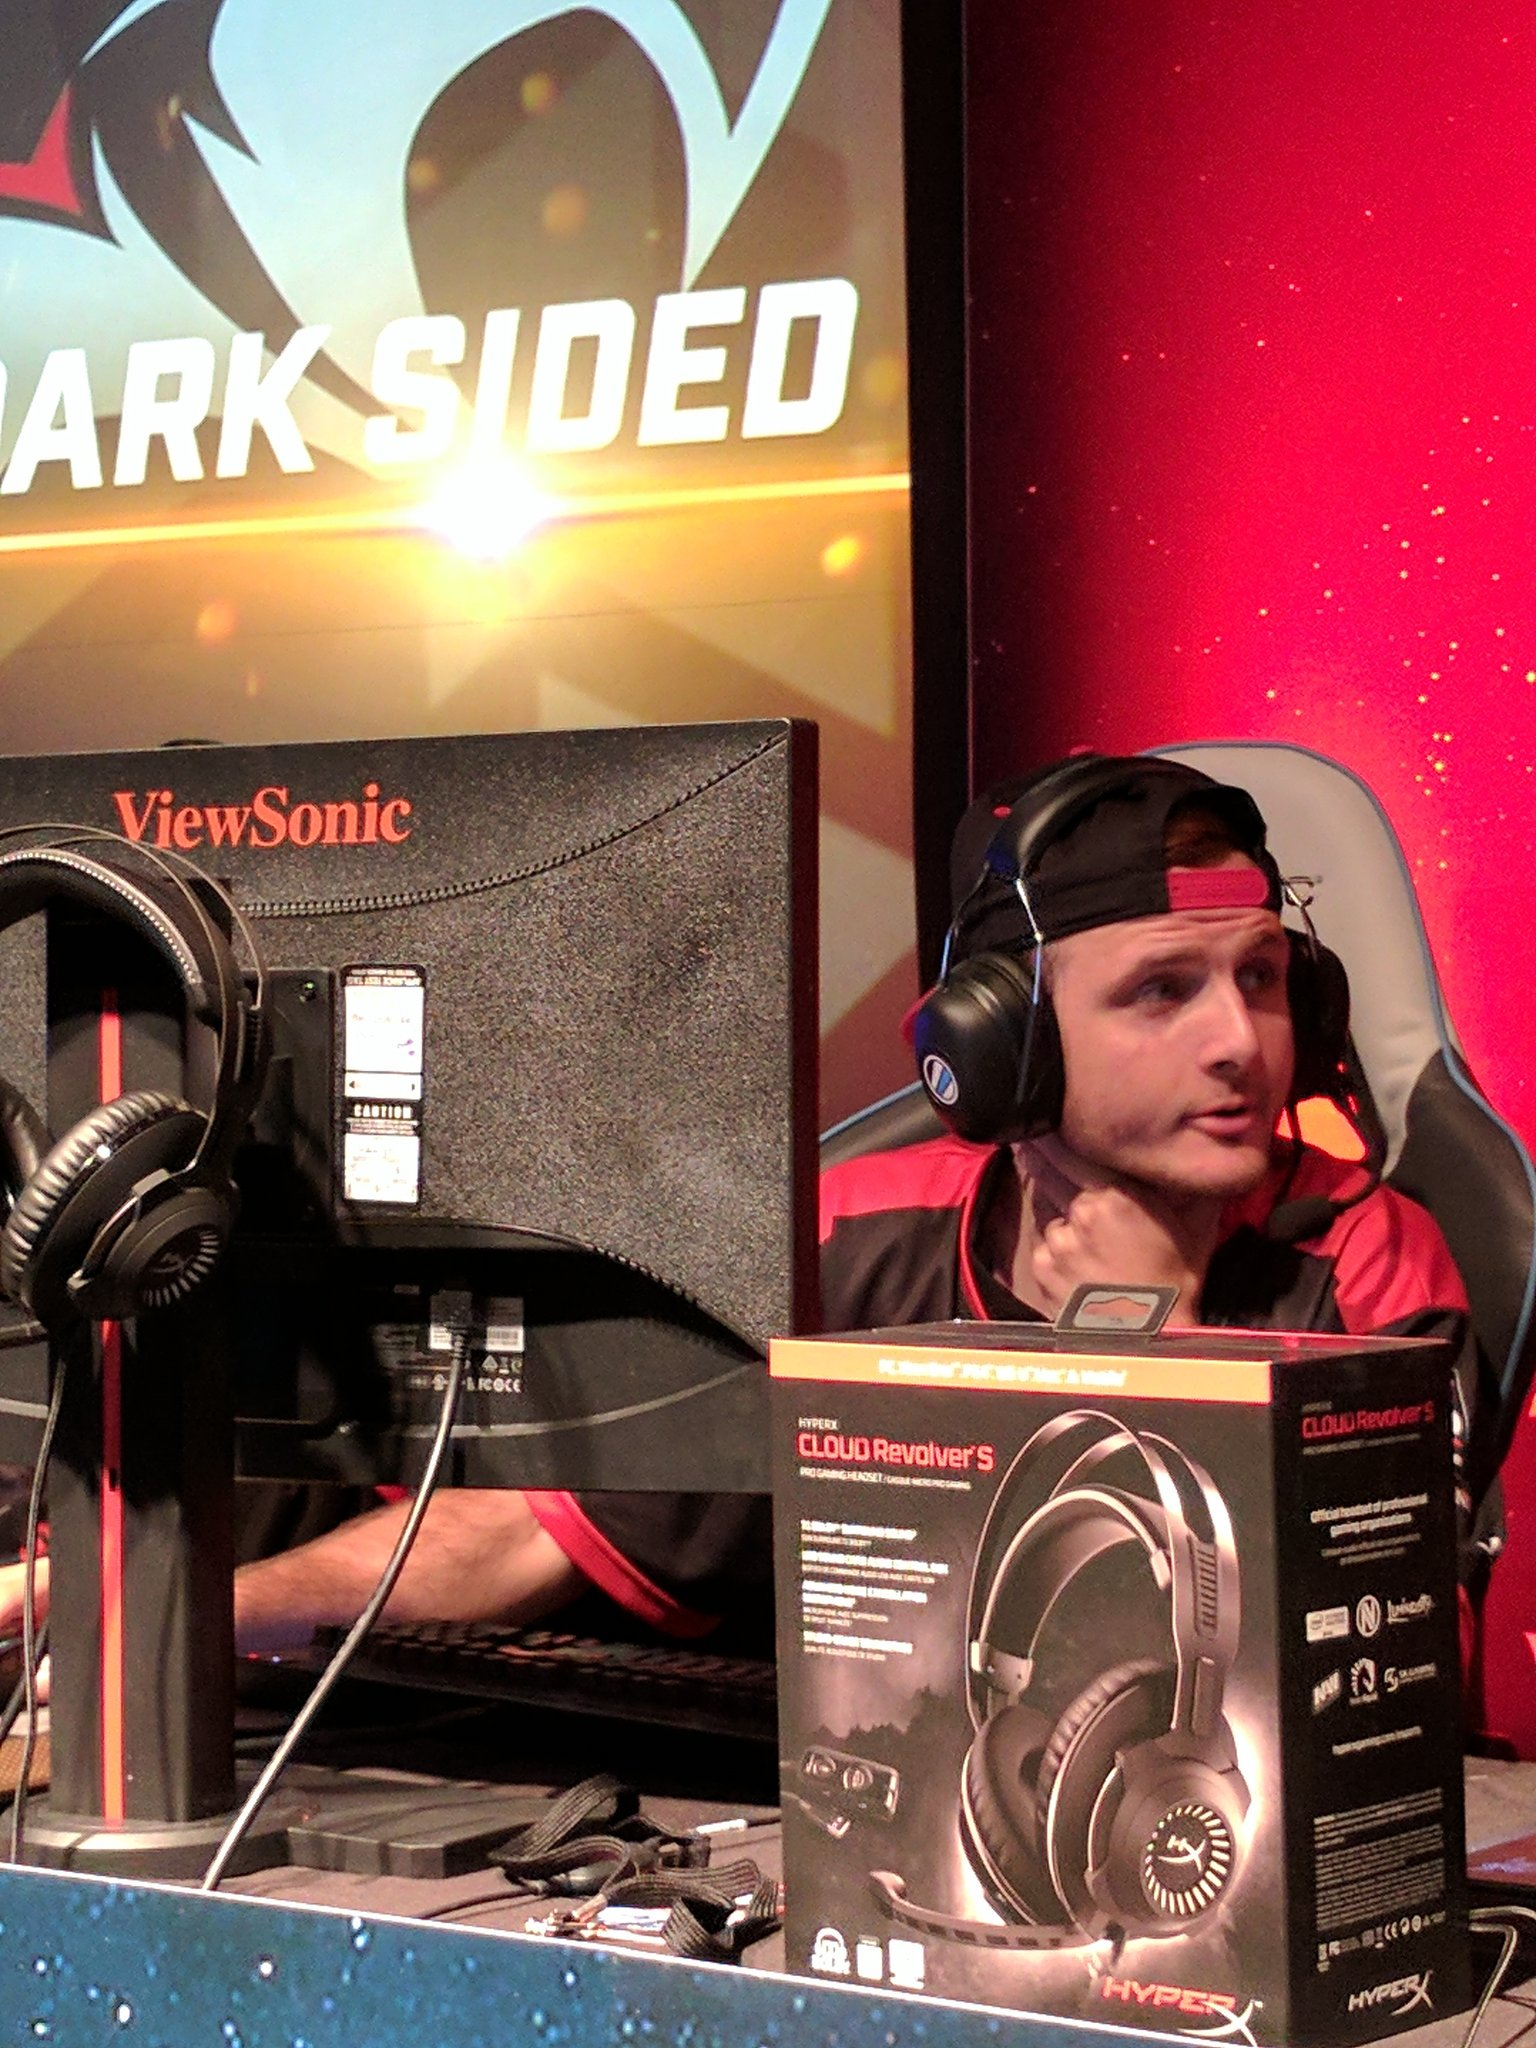 Dark Sided SMITE team featuring Viewsonic monitor